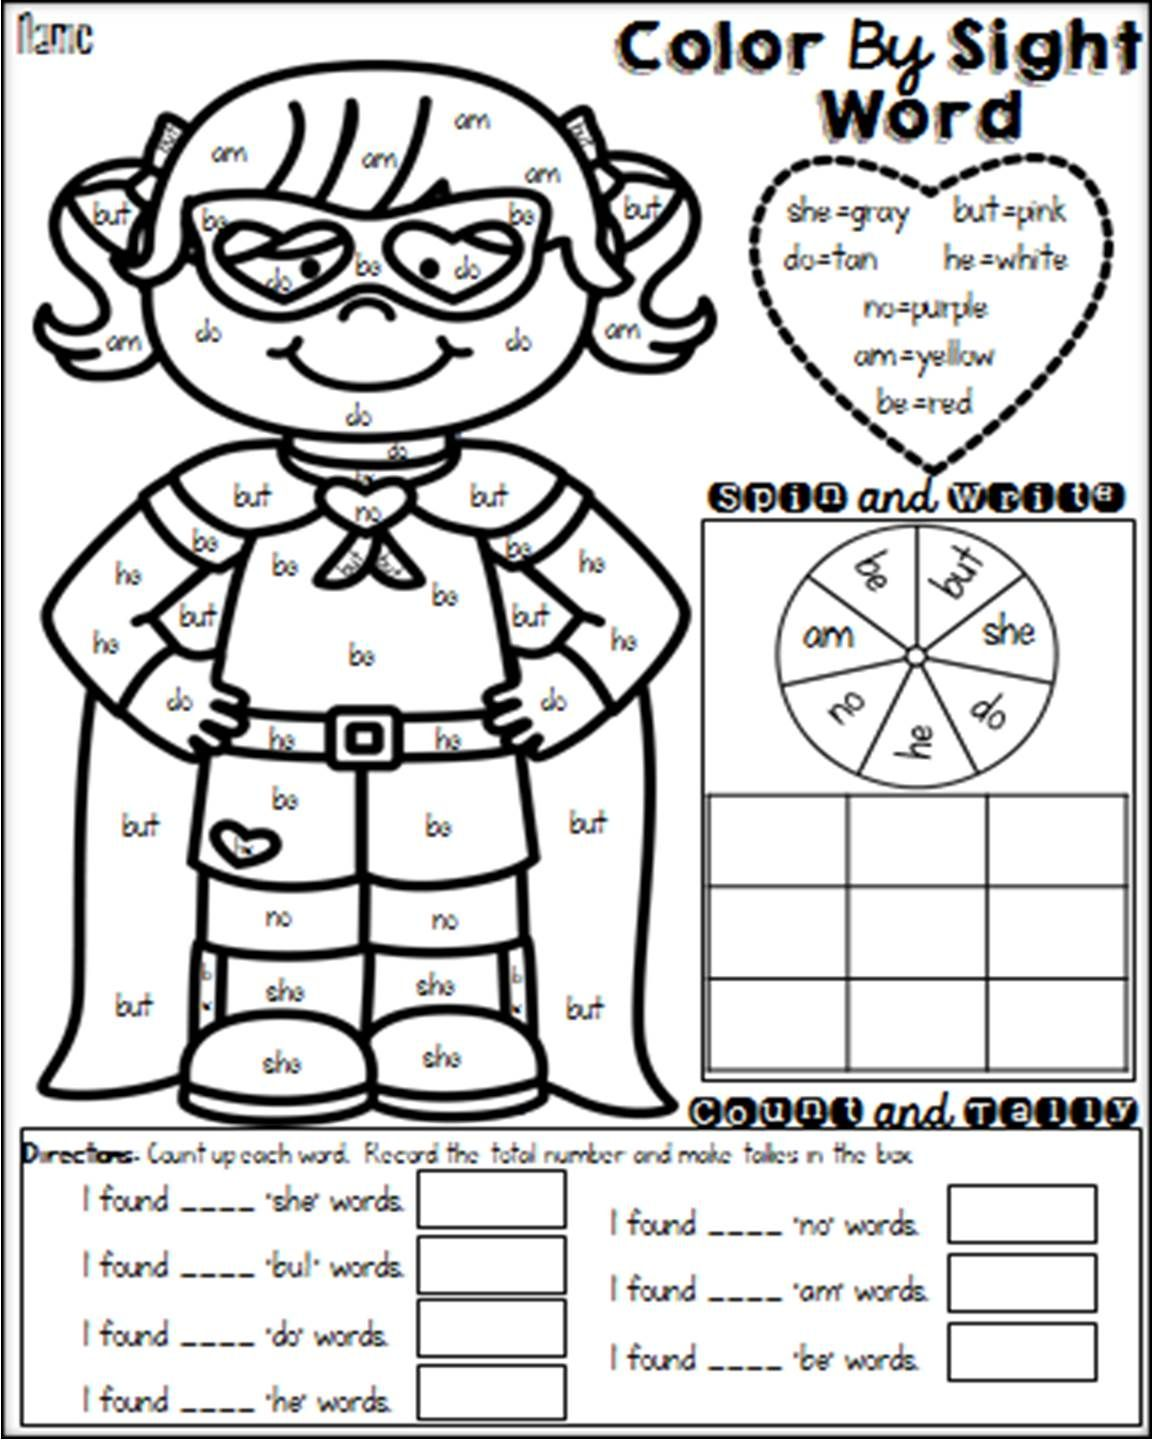 These Interactive No Prep Color By Sight Word Sheets Are For More Than Just Coloring There Are